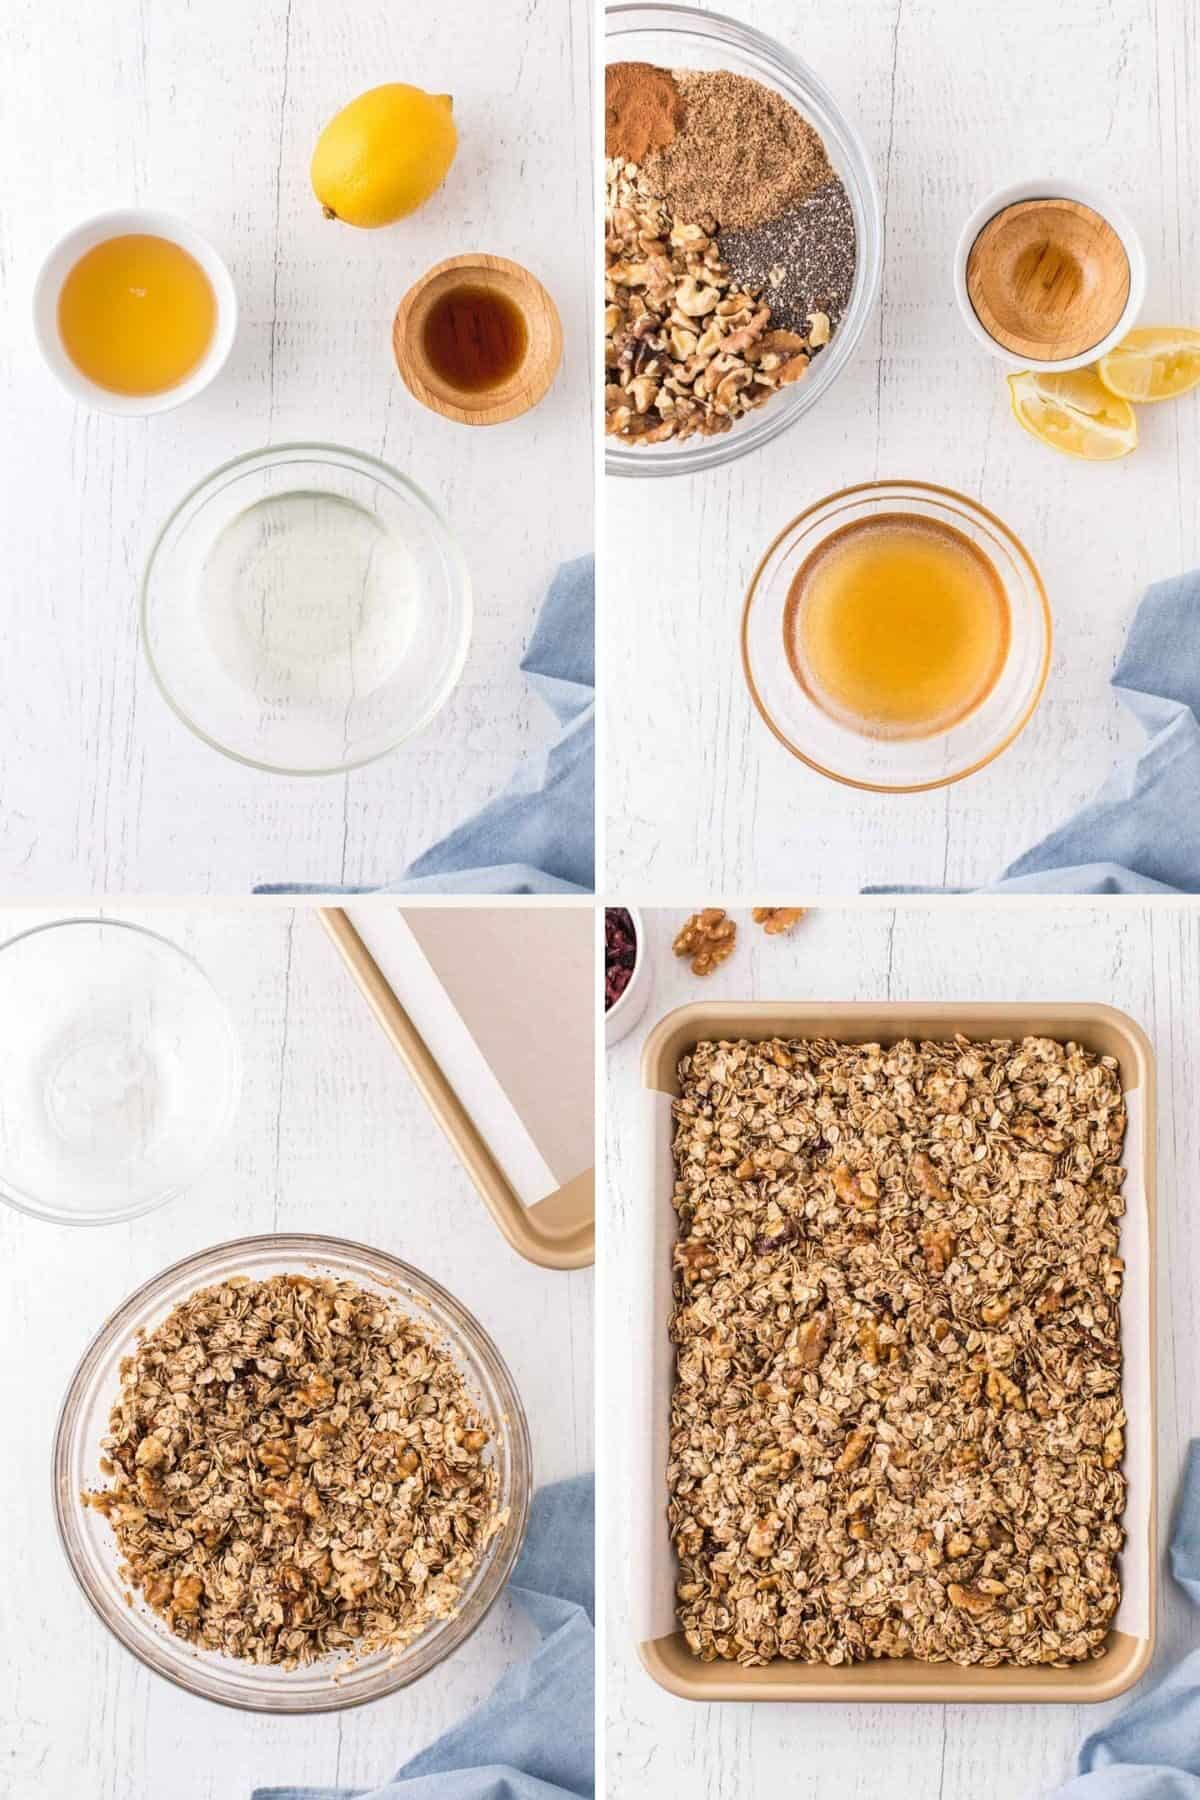 step by step photos showing prepping to make granola